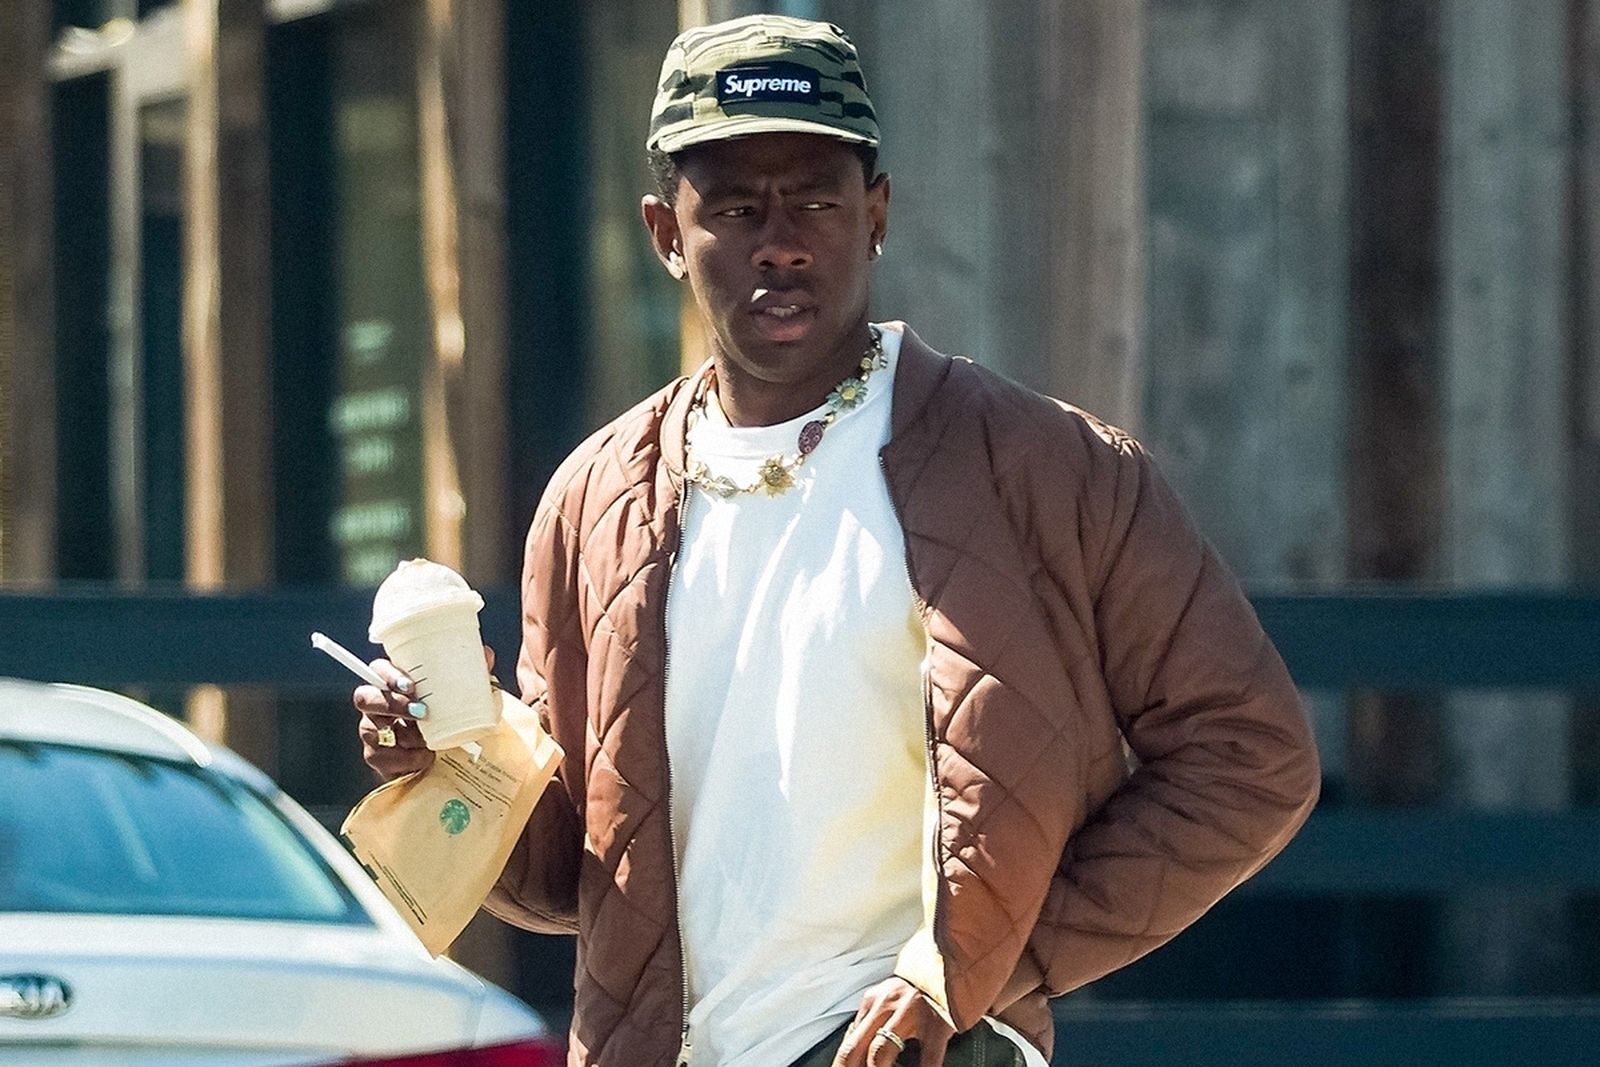 tyler-the-creator-wusyaname-video-outfit-main